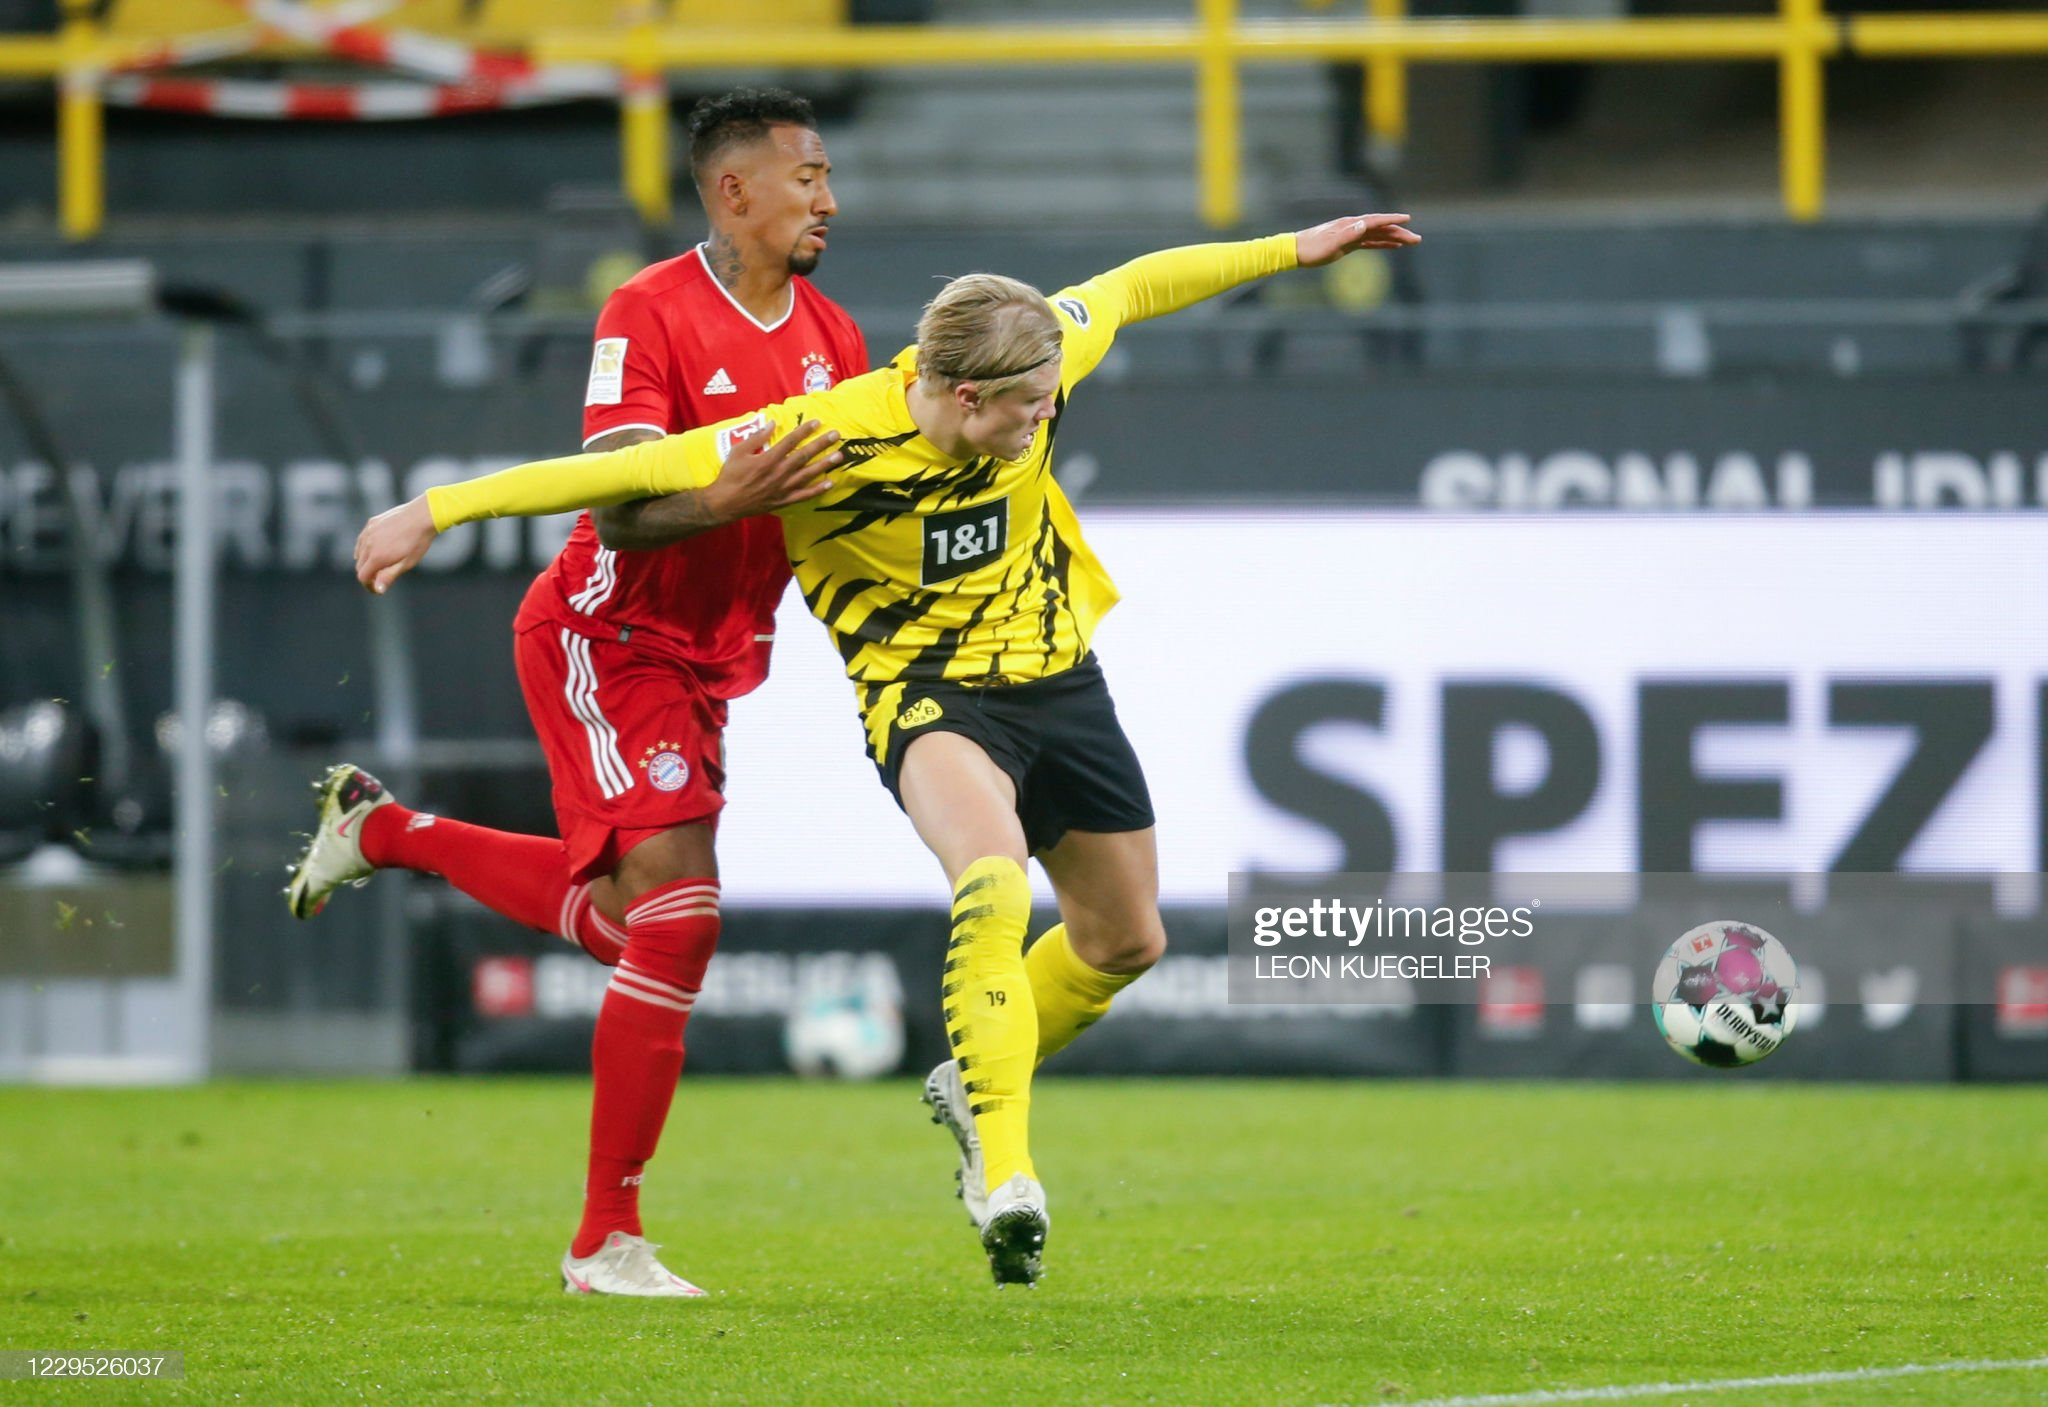 Bayern Munich vs Dortmund Preview, prediction and odds